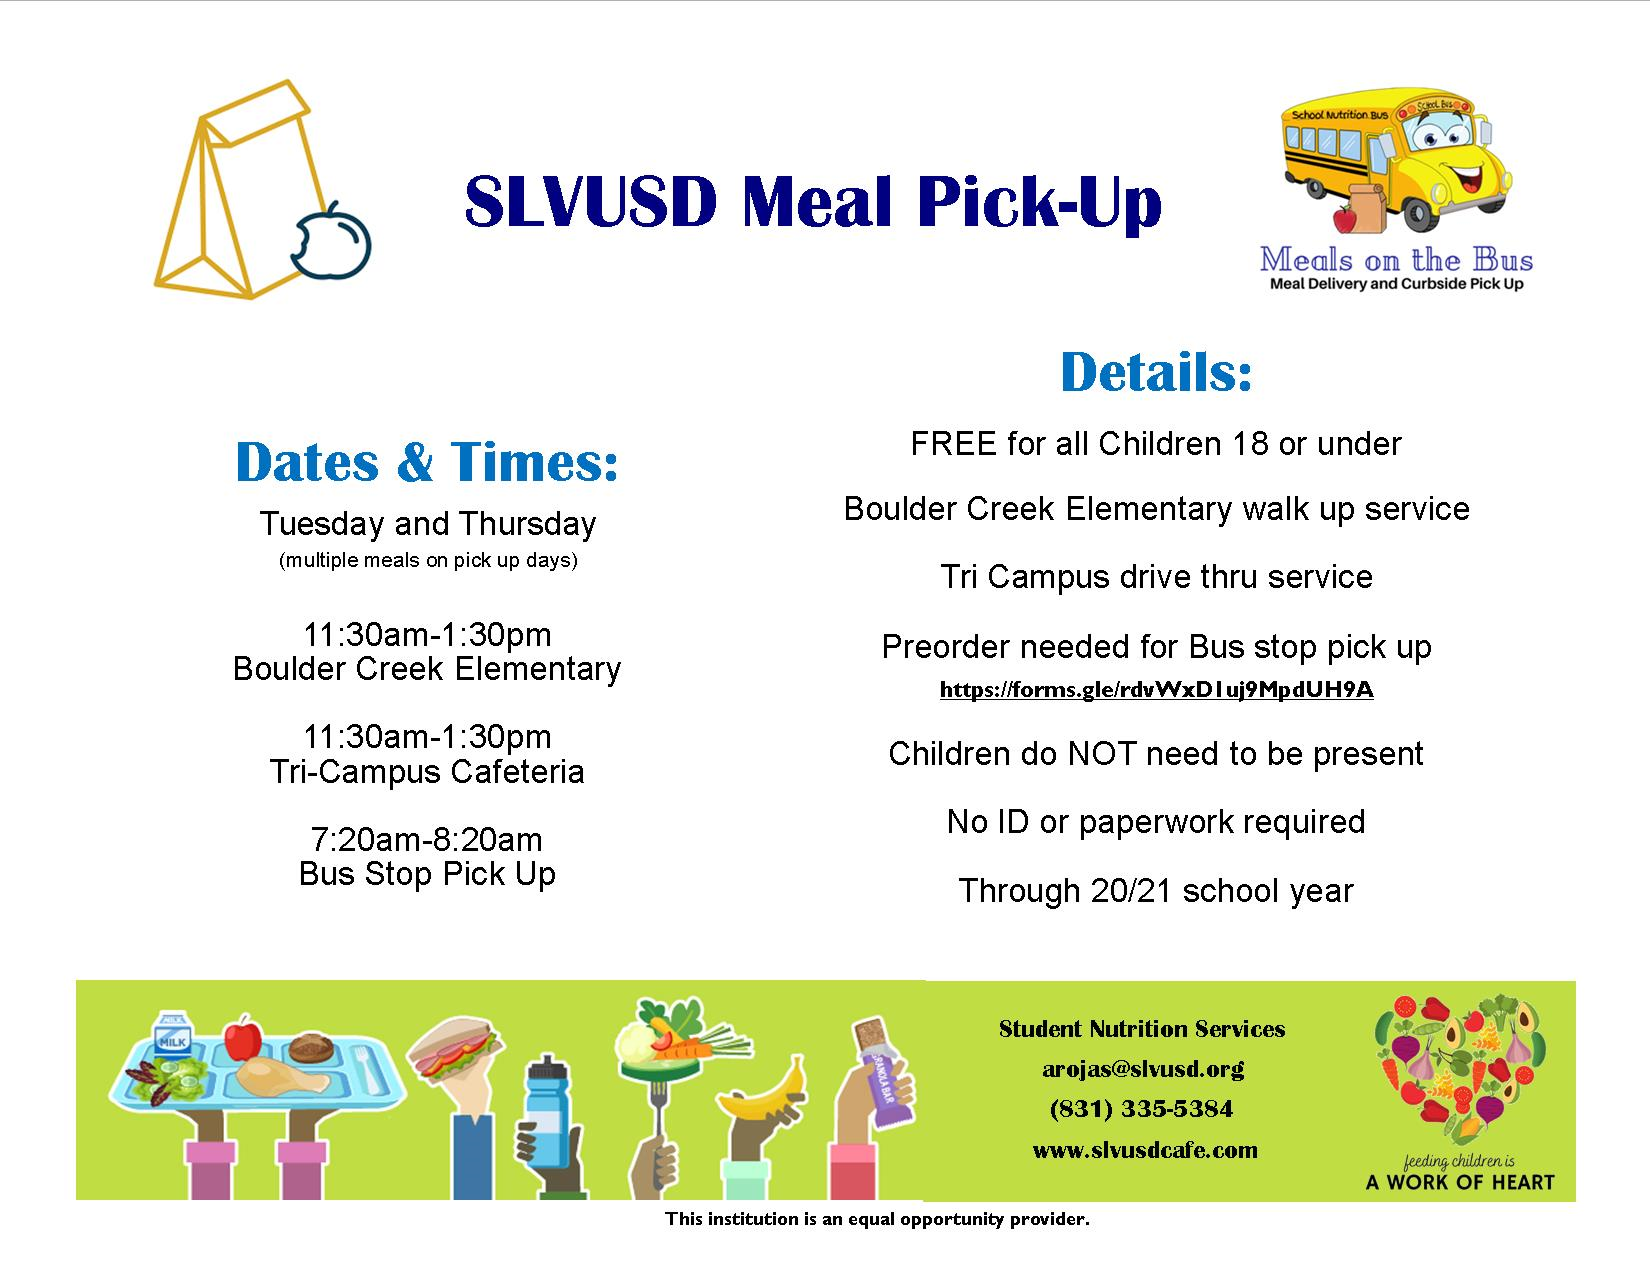 slvusd meal pick-up; call 335-5384 for details